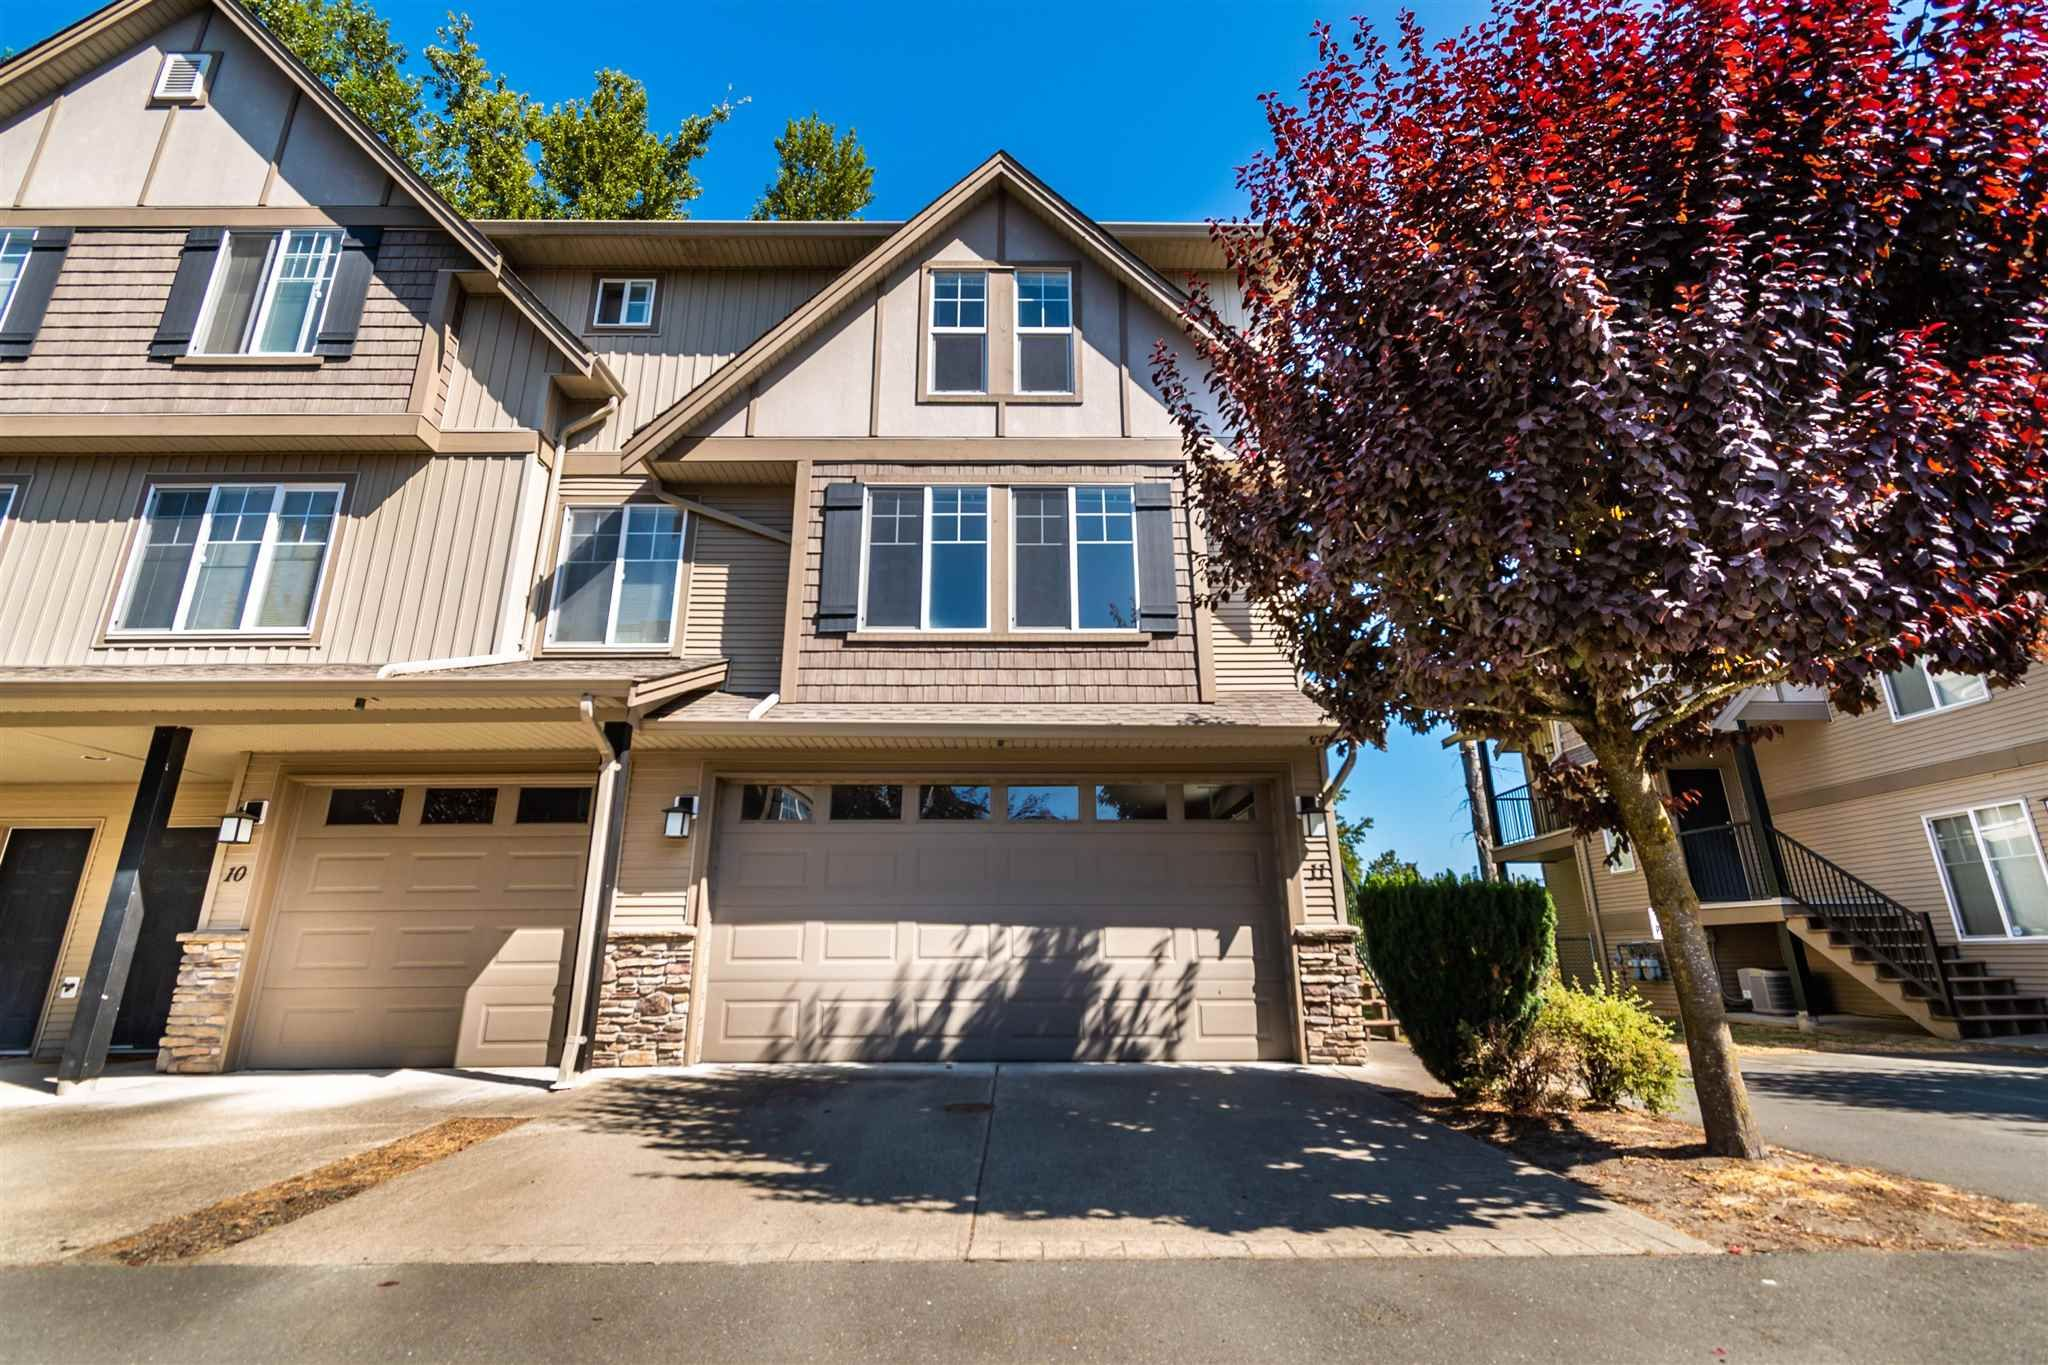 """Main Photo: 11 46321 CESSNA Drive in Chilliwack: Chilliwack E Young-Yale Townhouse for sale in """"Cessna Landing"""" : MLS®# R2606184"""